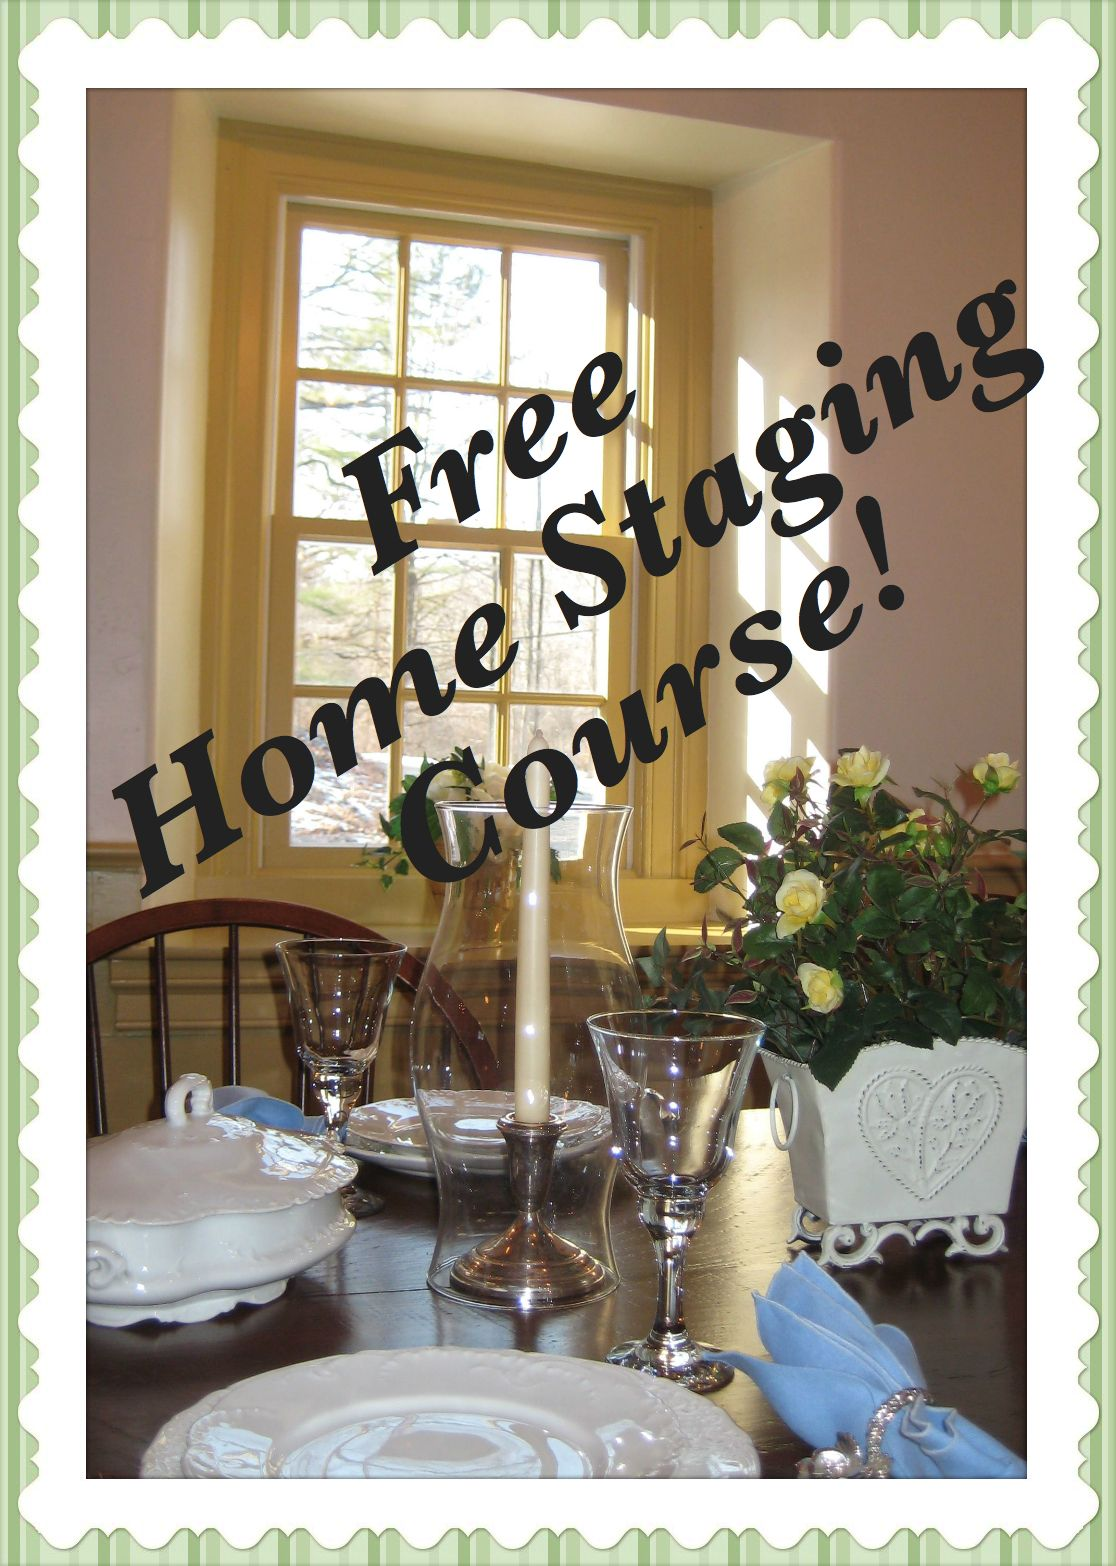 Free Home staging course   Home staging, Interior design ...